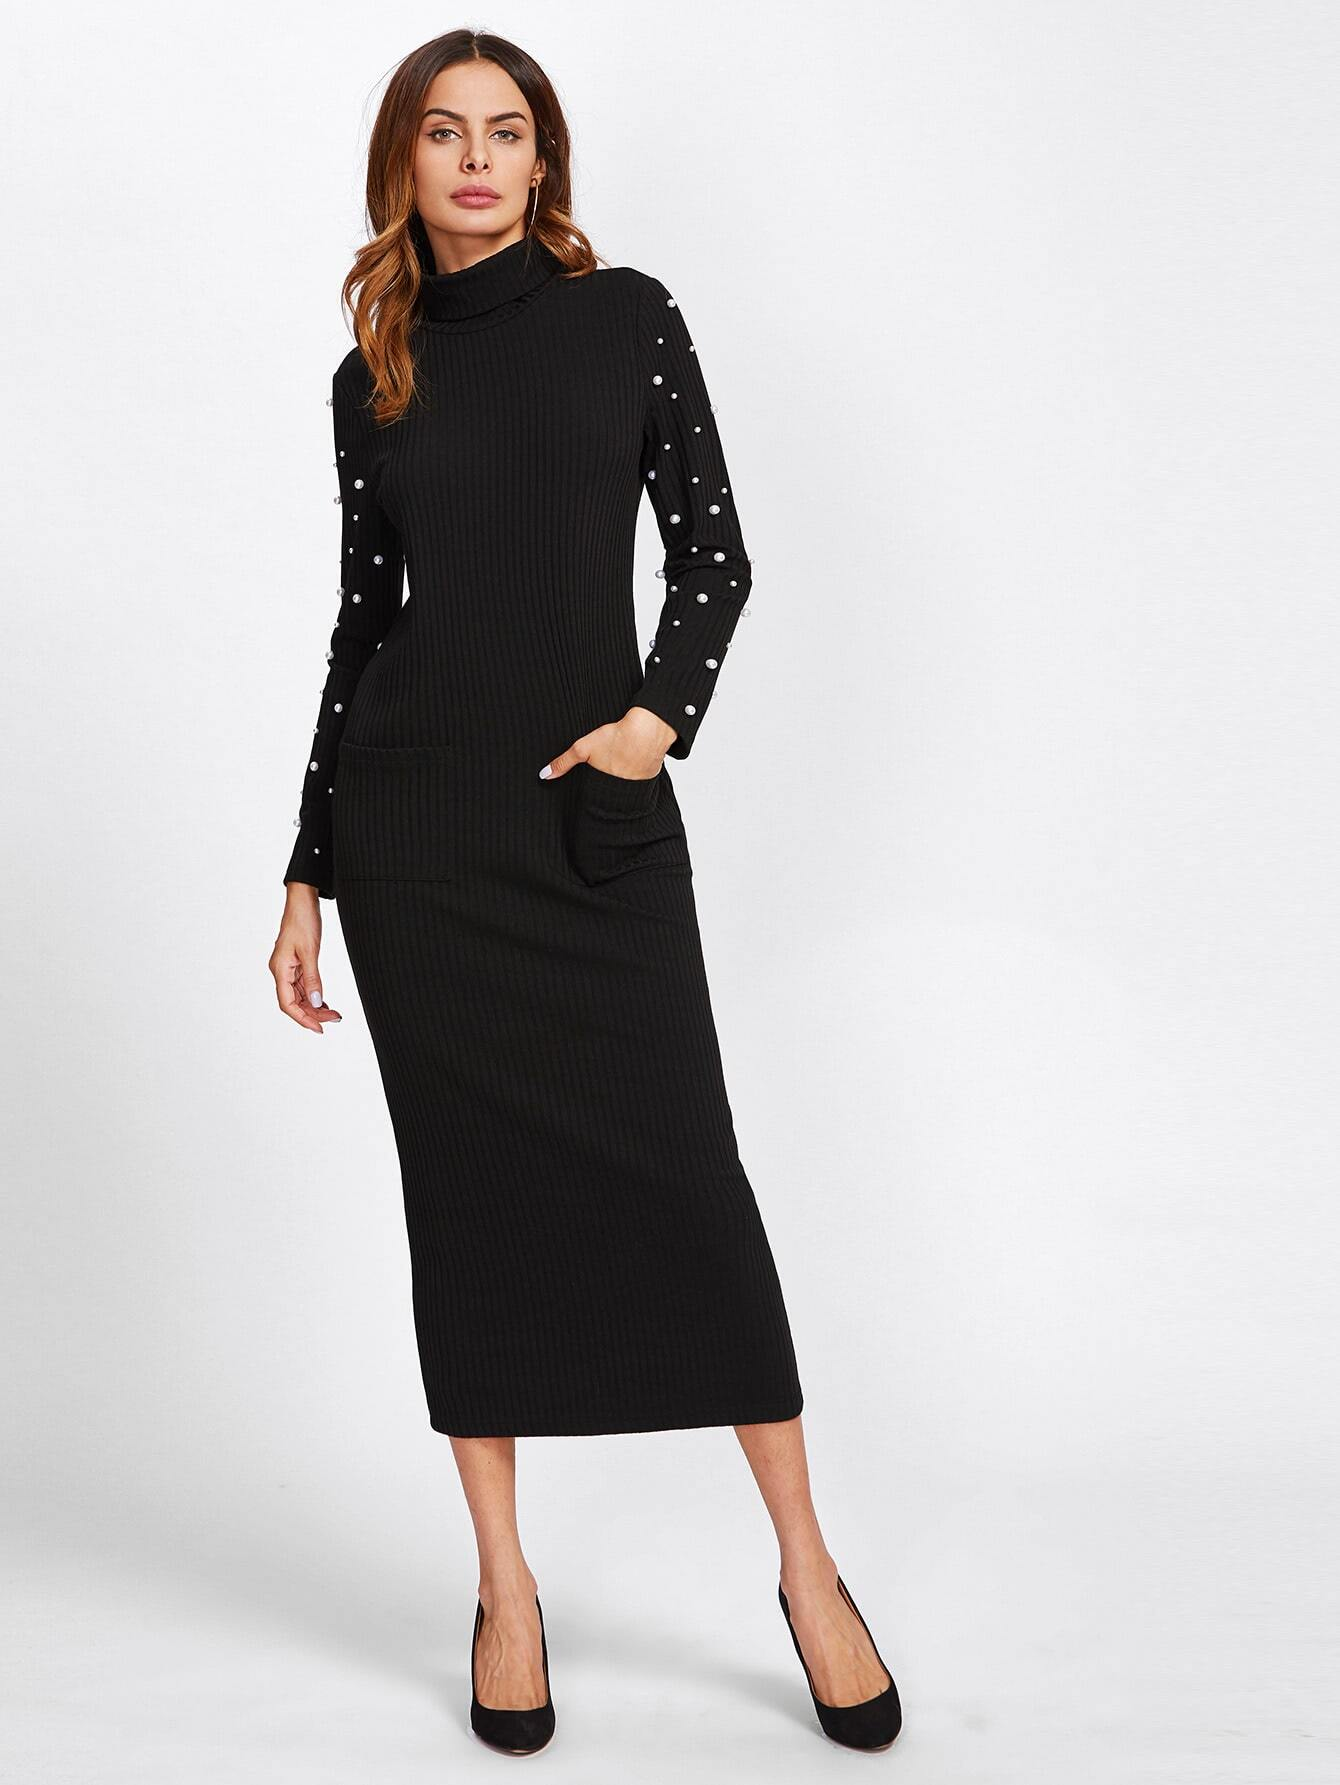 Turtle Neck Pearl Detail Ribbed Pencil Dress dress171025707